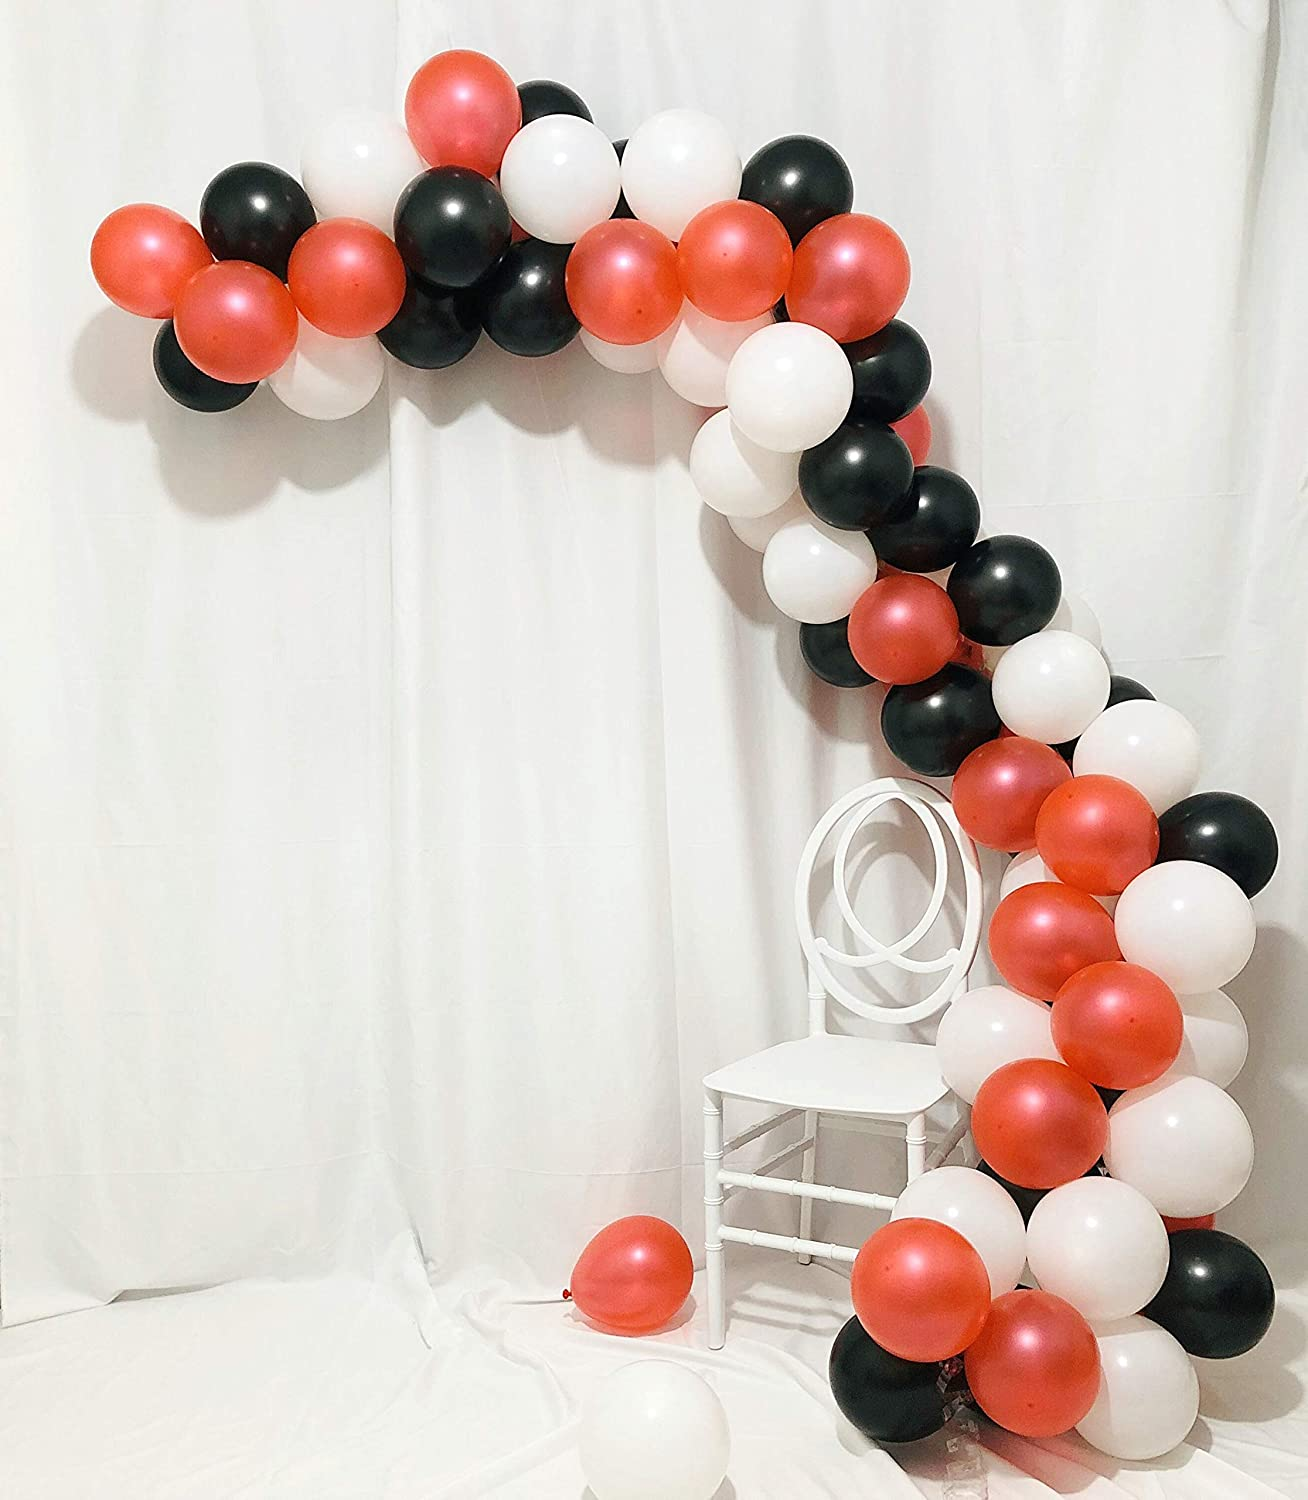 Sorive Balloon Arch & Garland Kit | Happy Valentine's Day Balloons Bouquet Pearl Red Black and White Latex Party Decorations for Graduation Birthday Wedding Bridal Shower Anniversary 102 Pack Supplies | Glue Dots & Decorating Strip